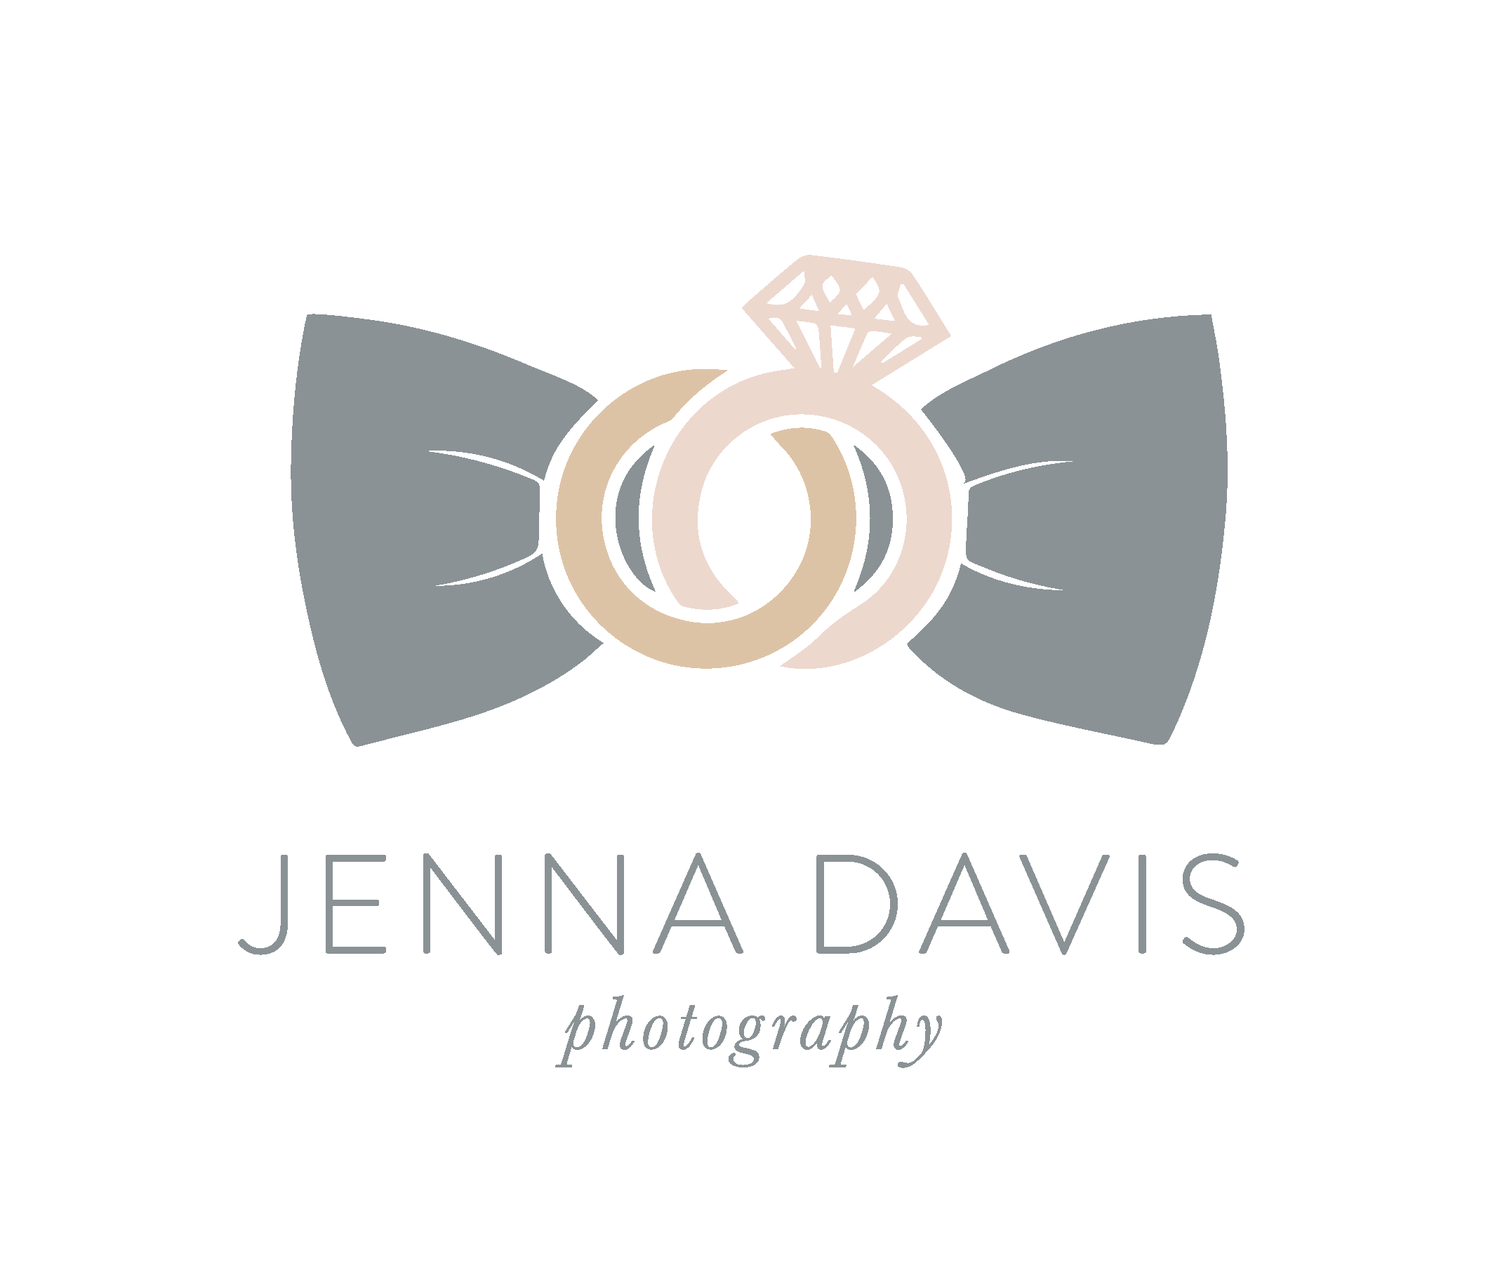 Jenna Davis Photography